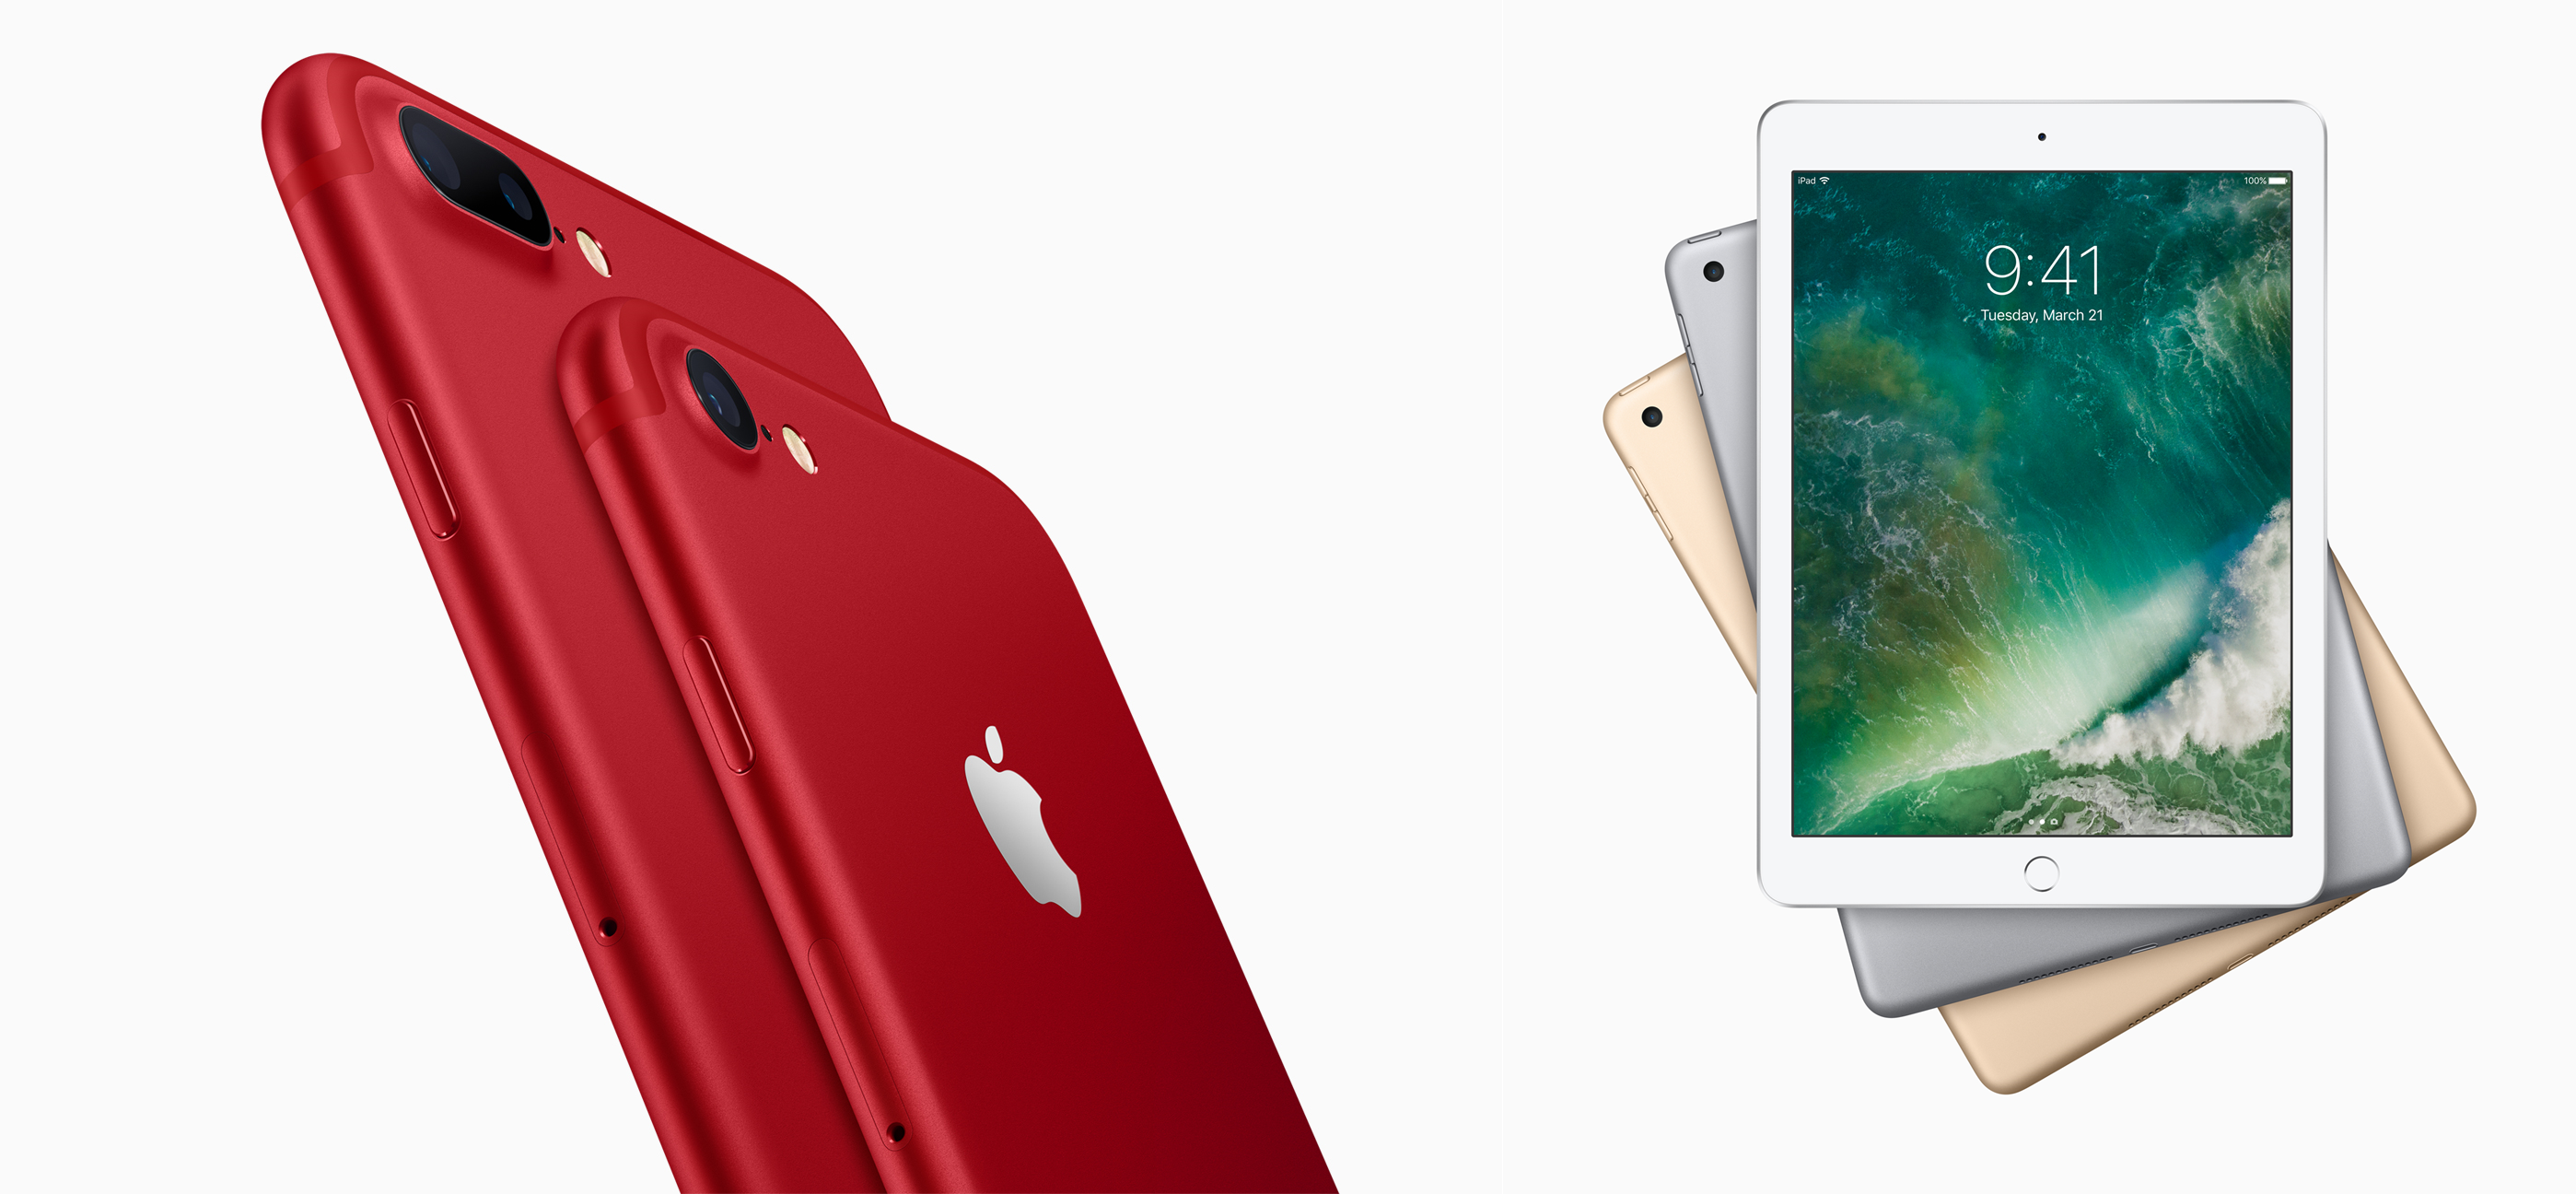 Apple Introduces A Red iPhone 7 Variant And The Cheapest 9 ...